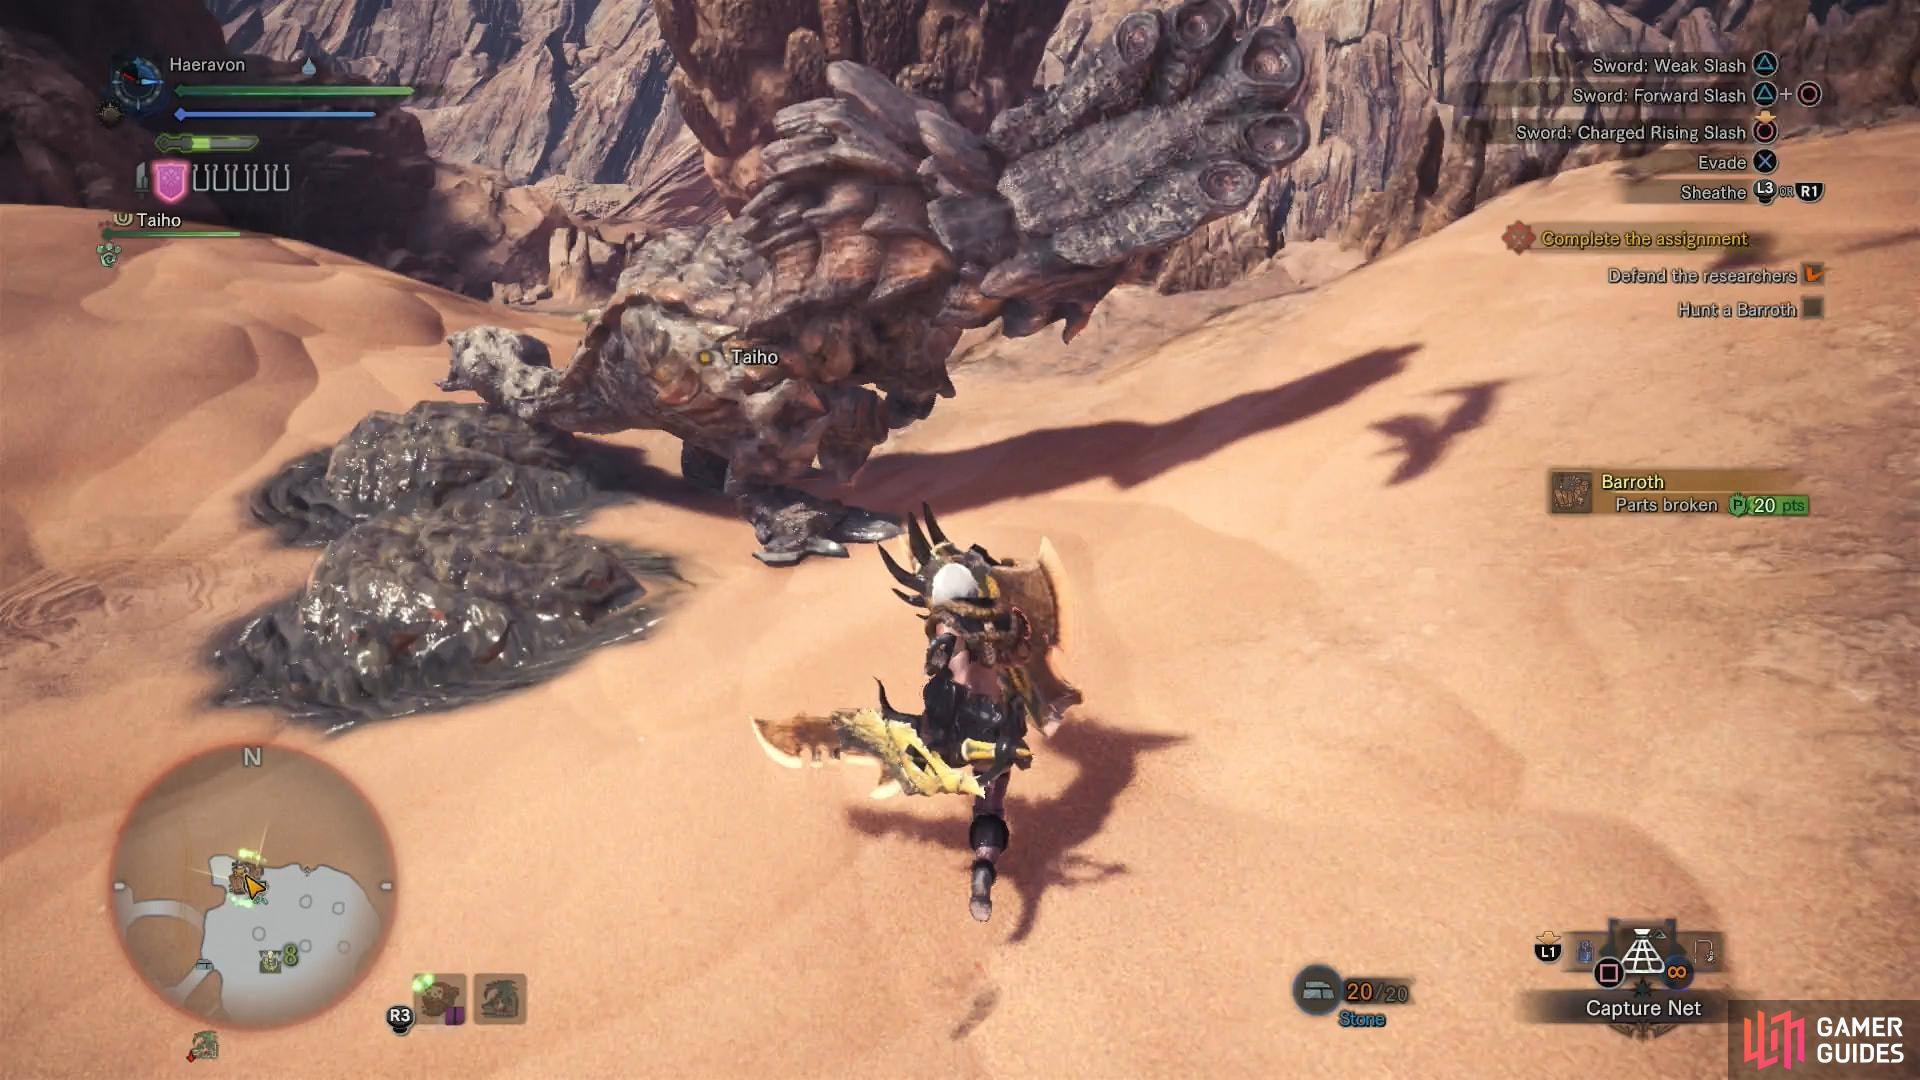 The Barroth will discharge muddy goo, sometimes intentionally, sometimes as part of other attacks